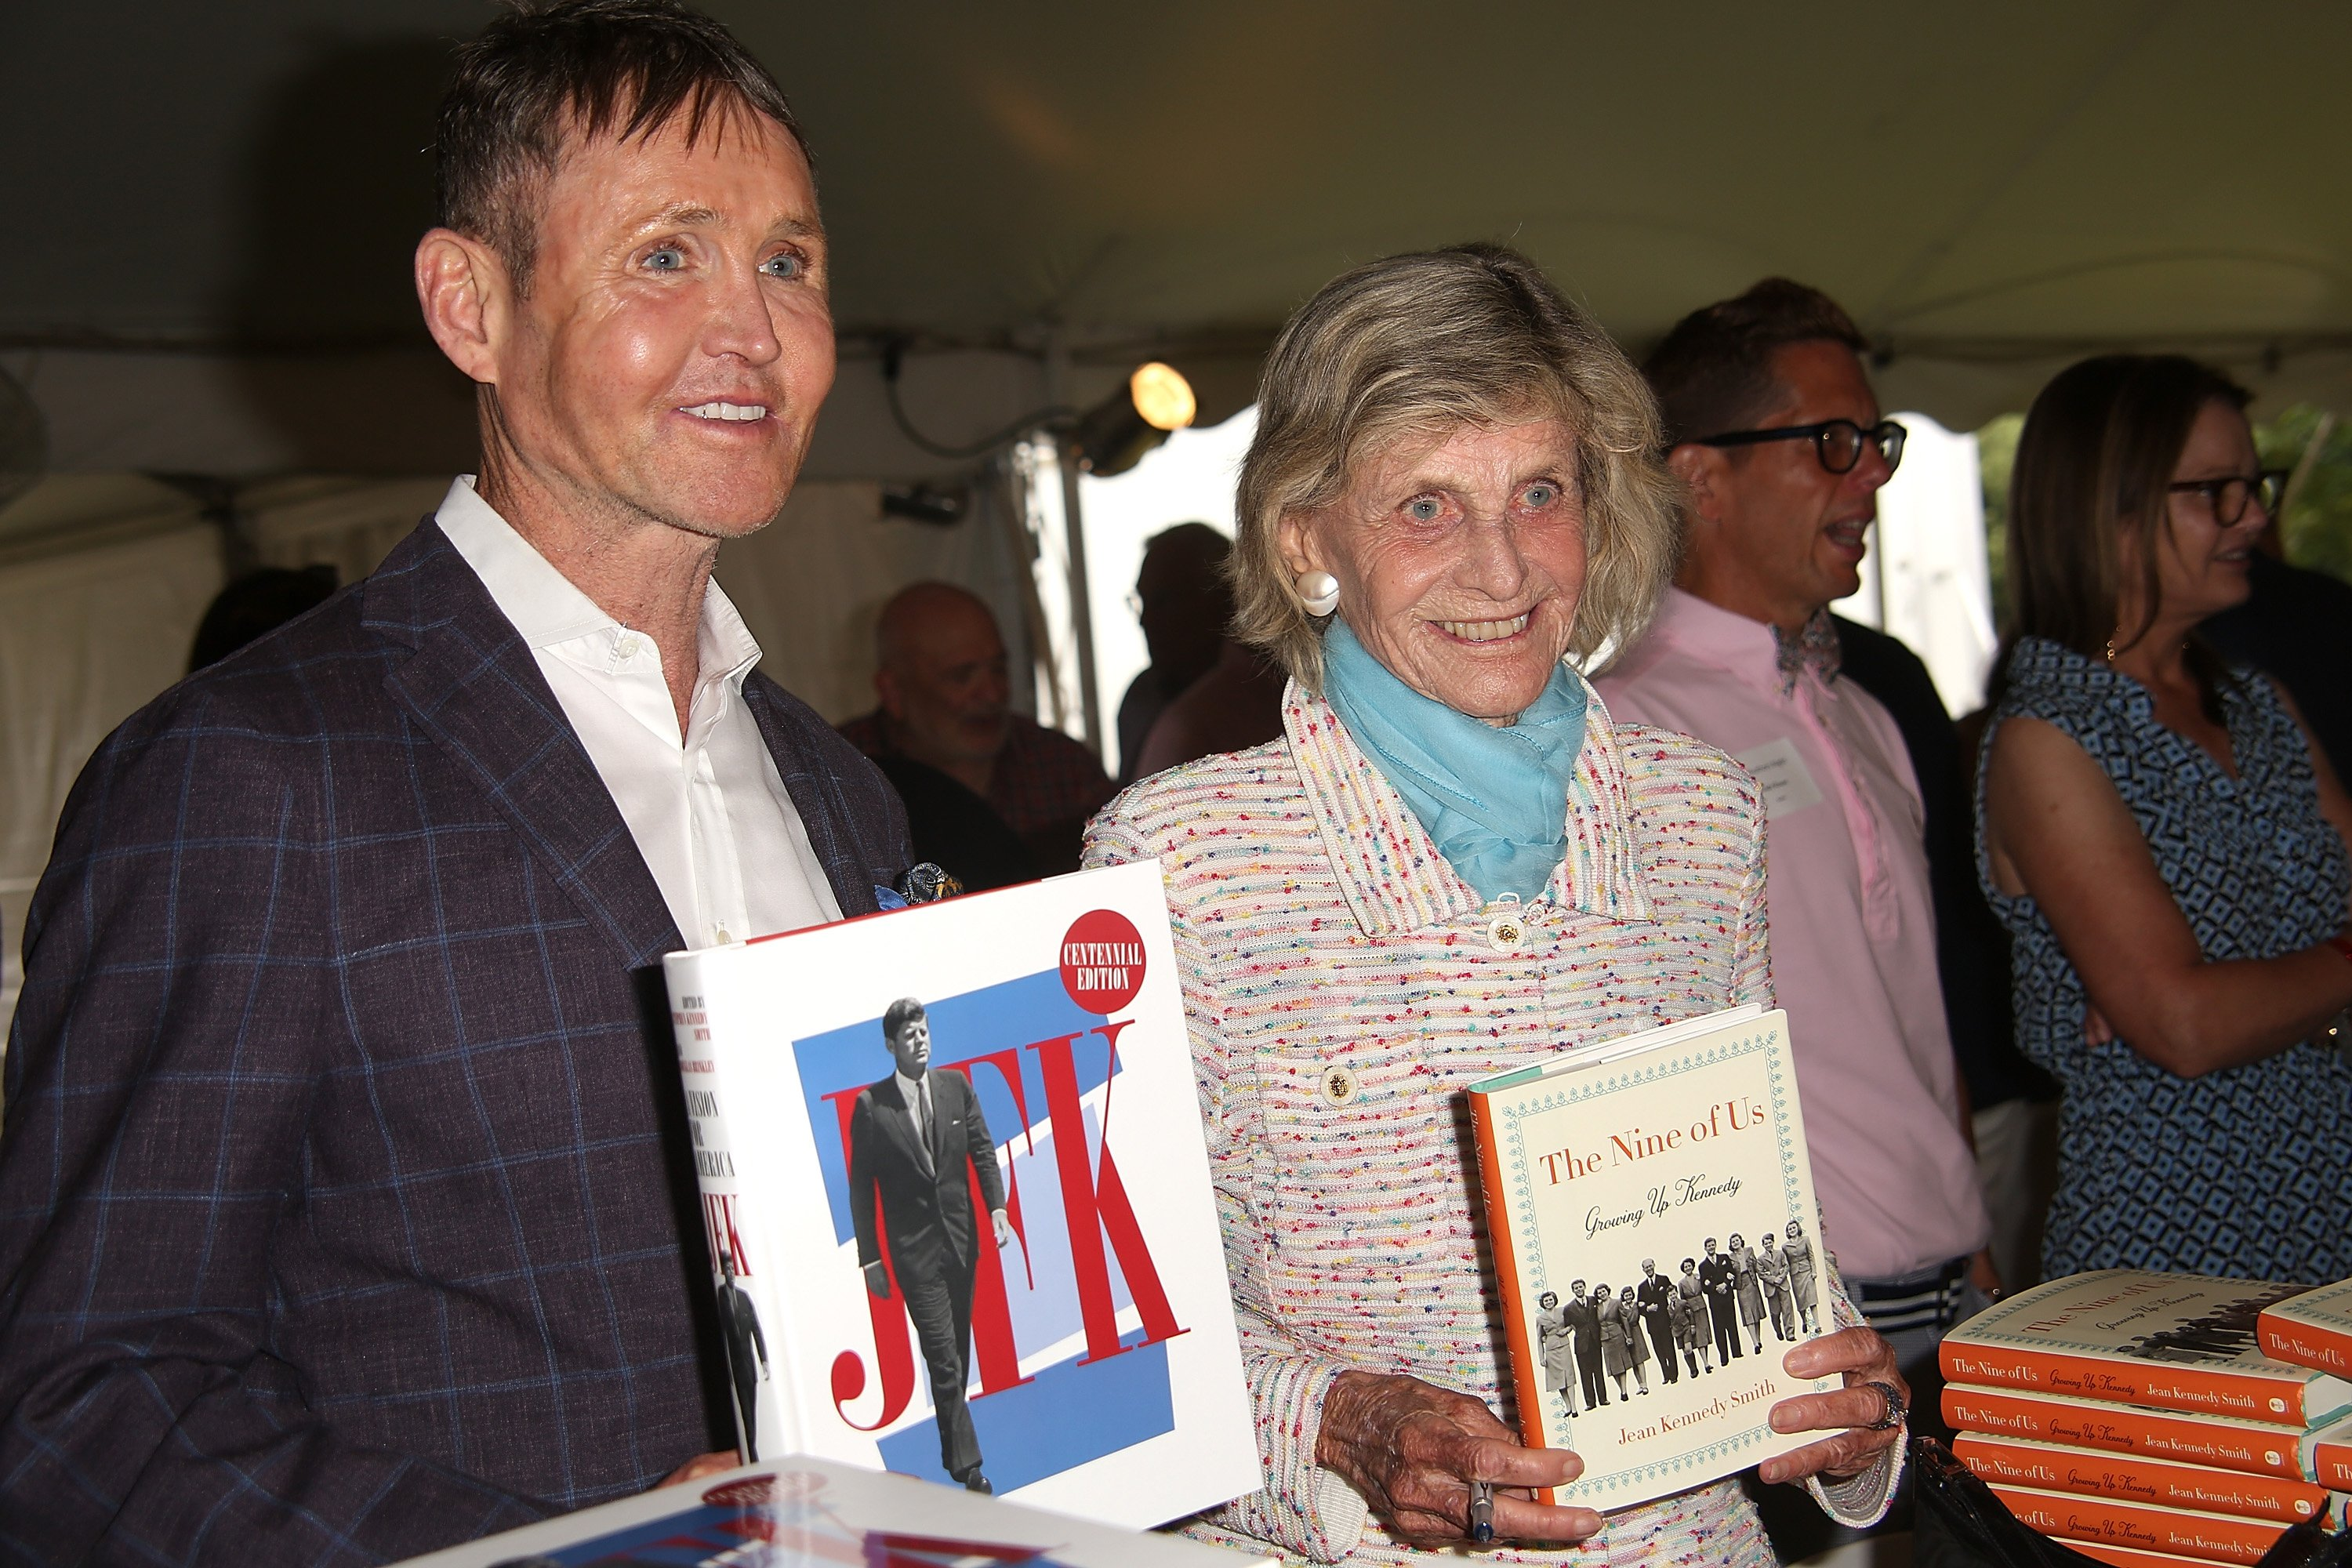 Stephen Kennedy Smith and Jean Kennedy Smith attend Author's Night on August 12, 2017 in East Hampton, New York | Photo: Getty Images